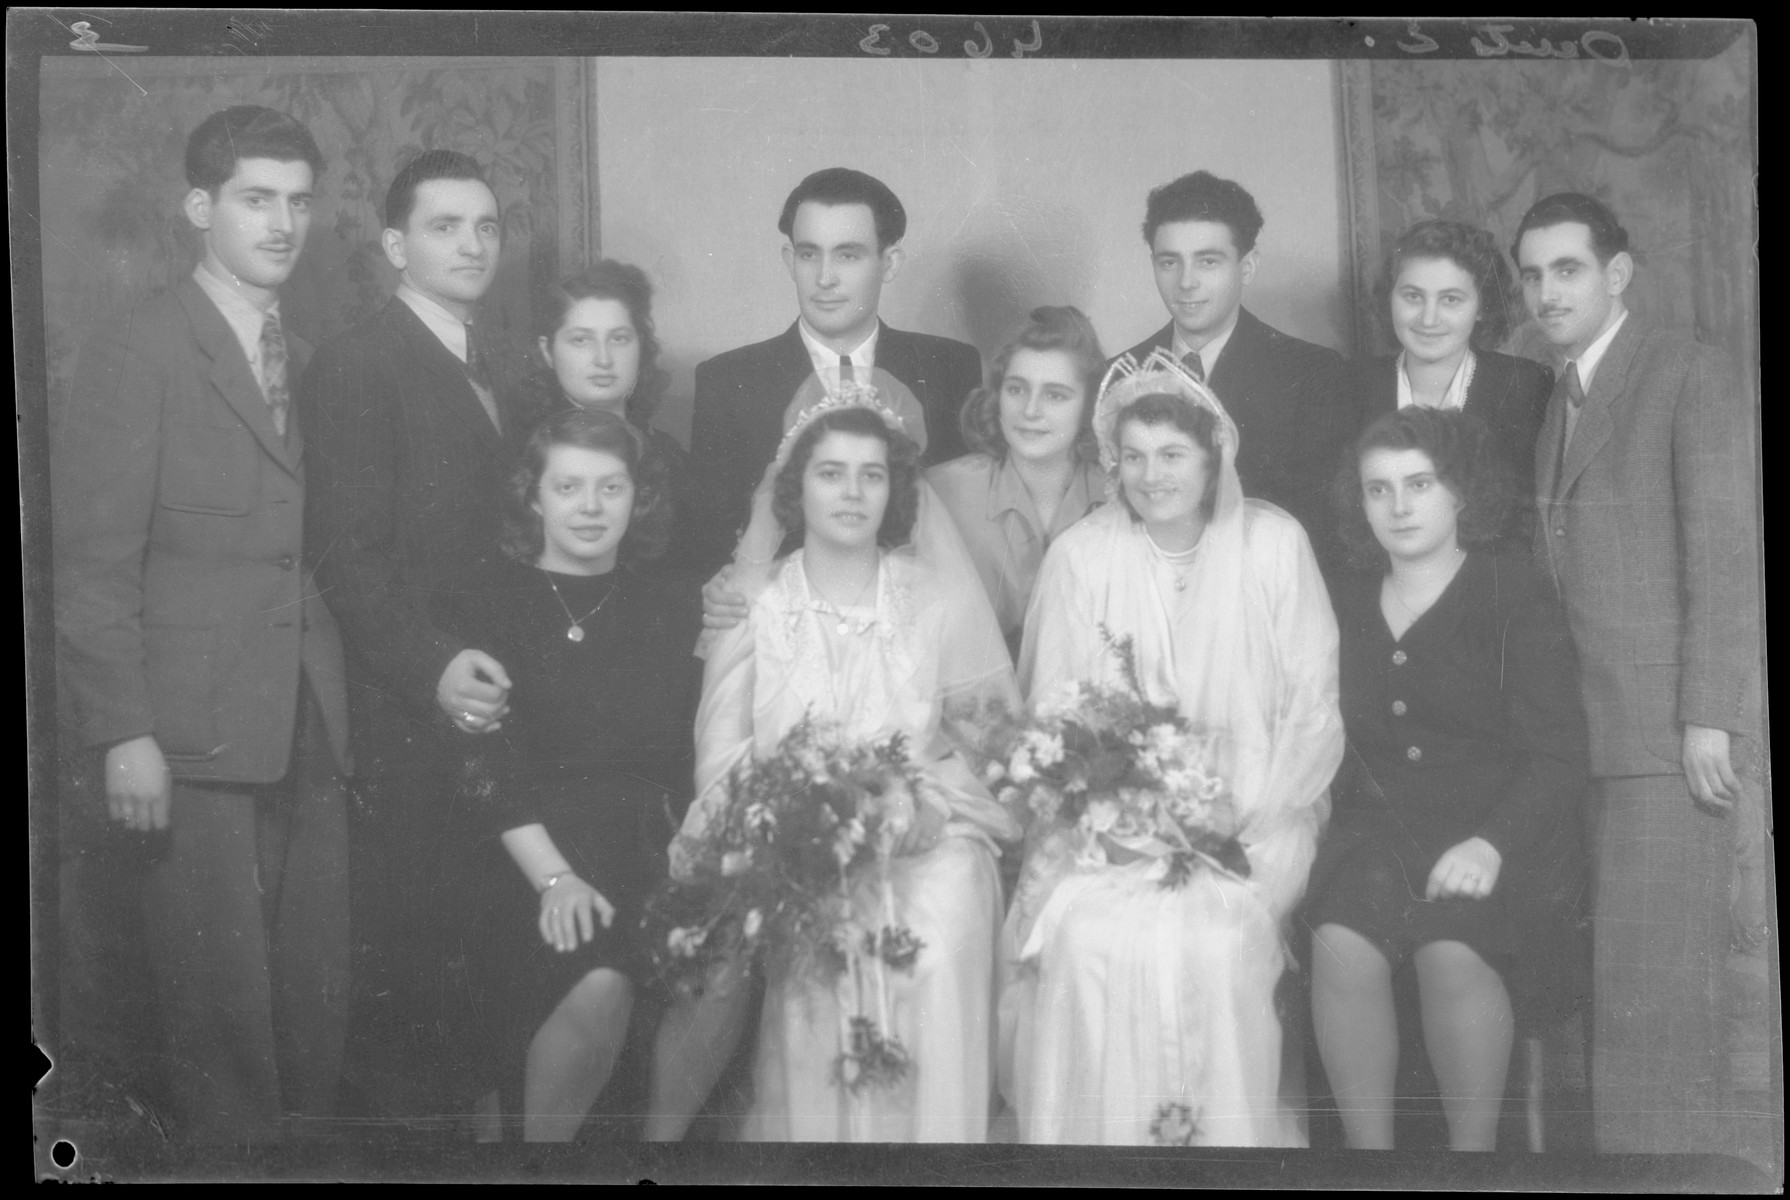 Studio portrait of the wedding of Herman Fischer together with that of another wedding.